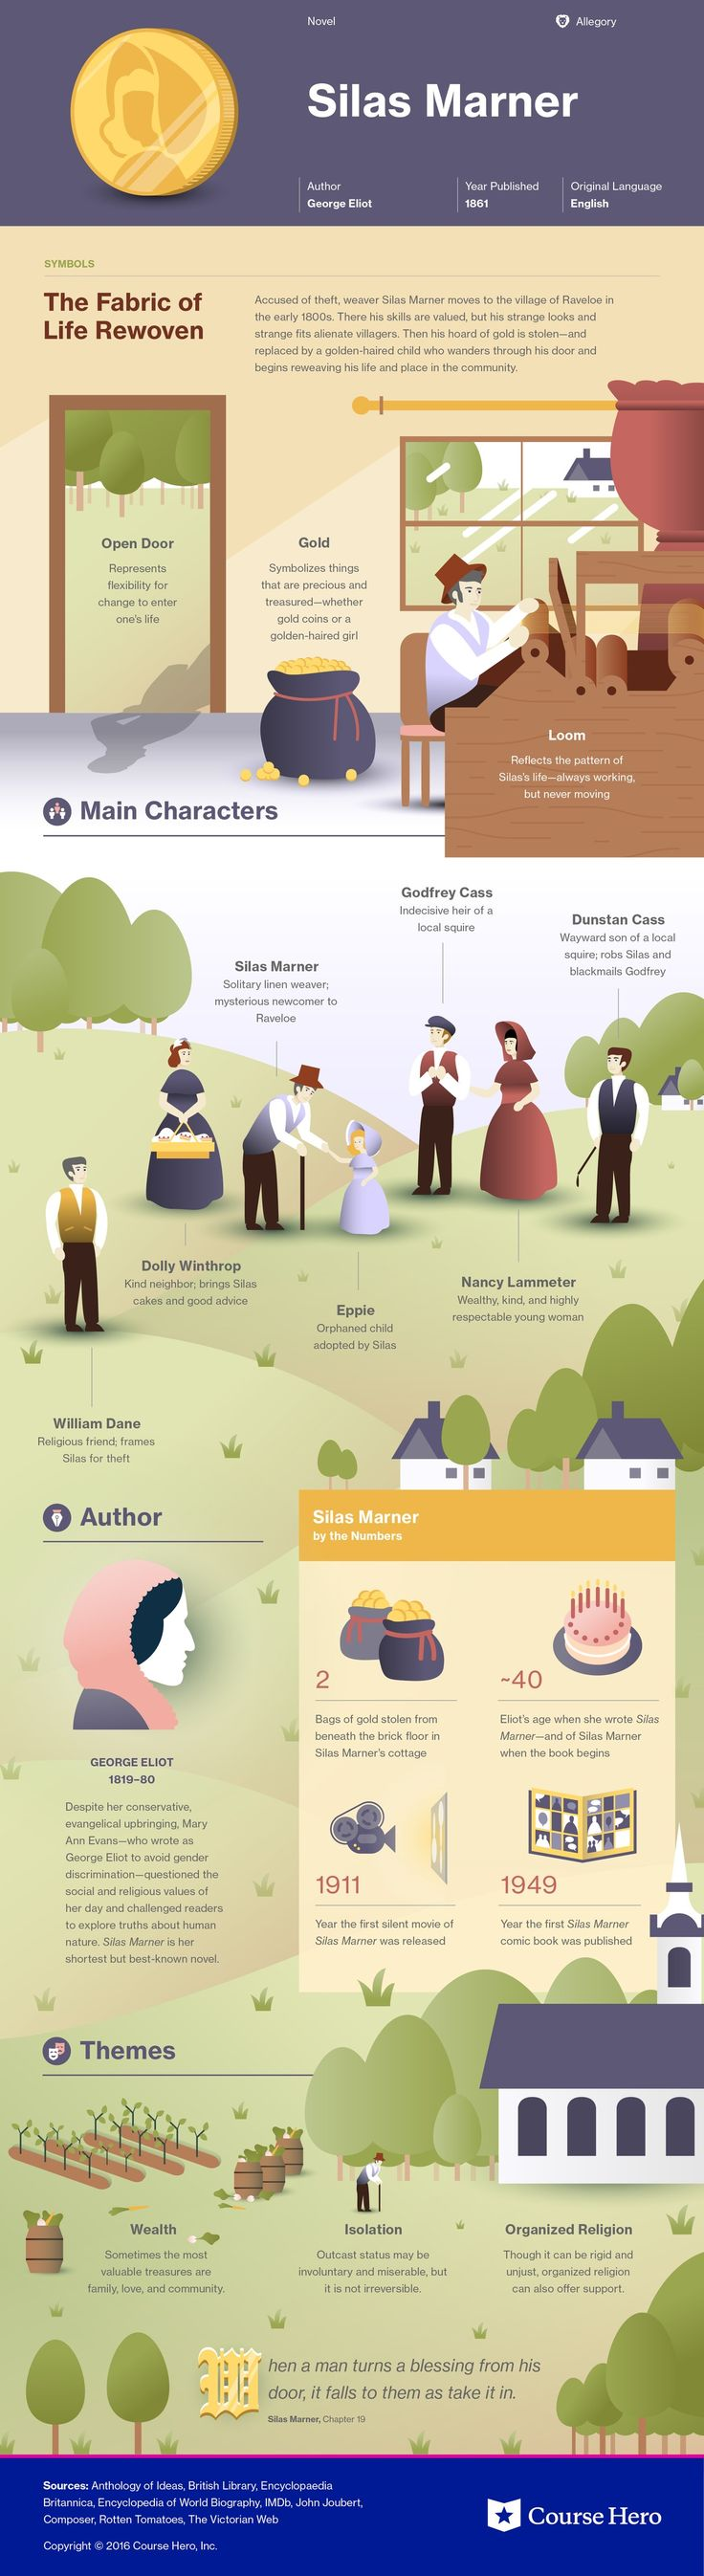 Silas Marner Infographic | Course Hero